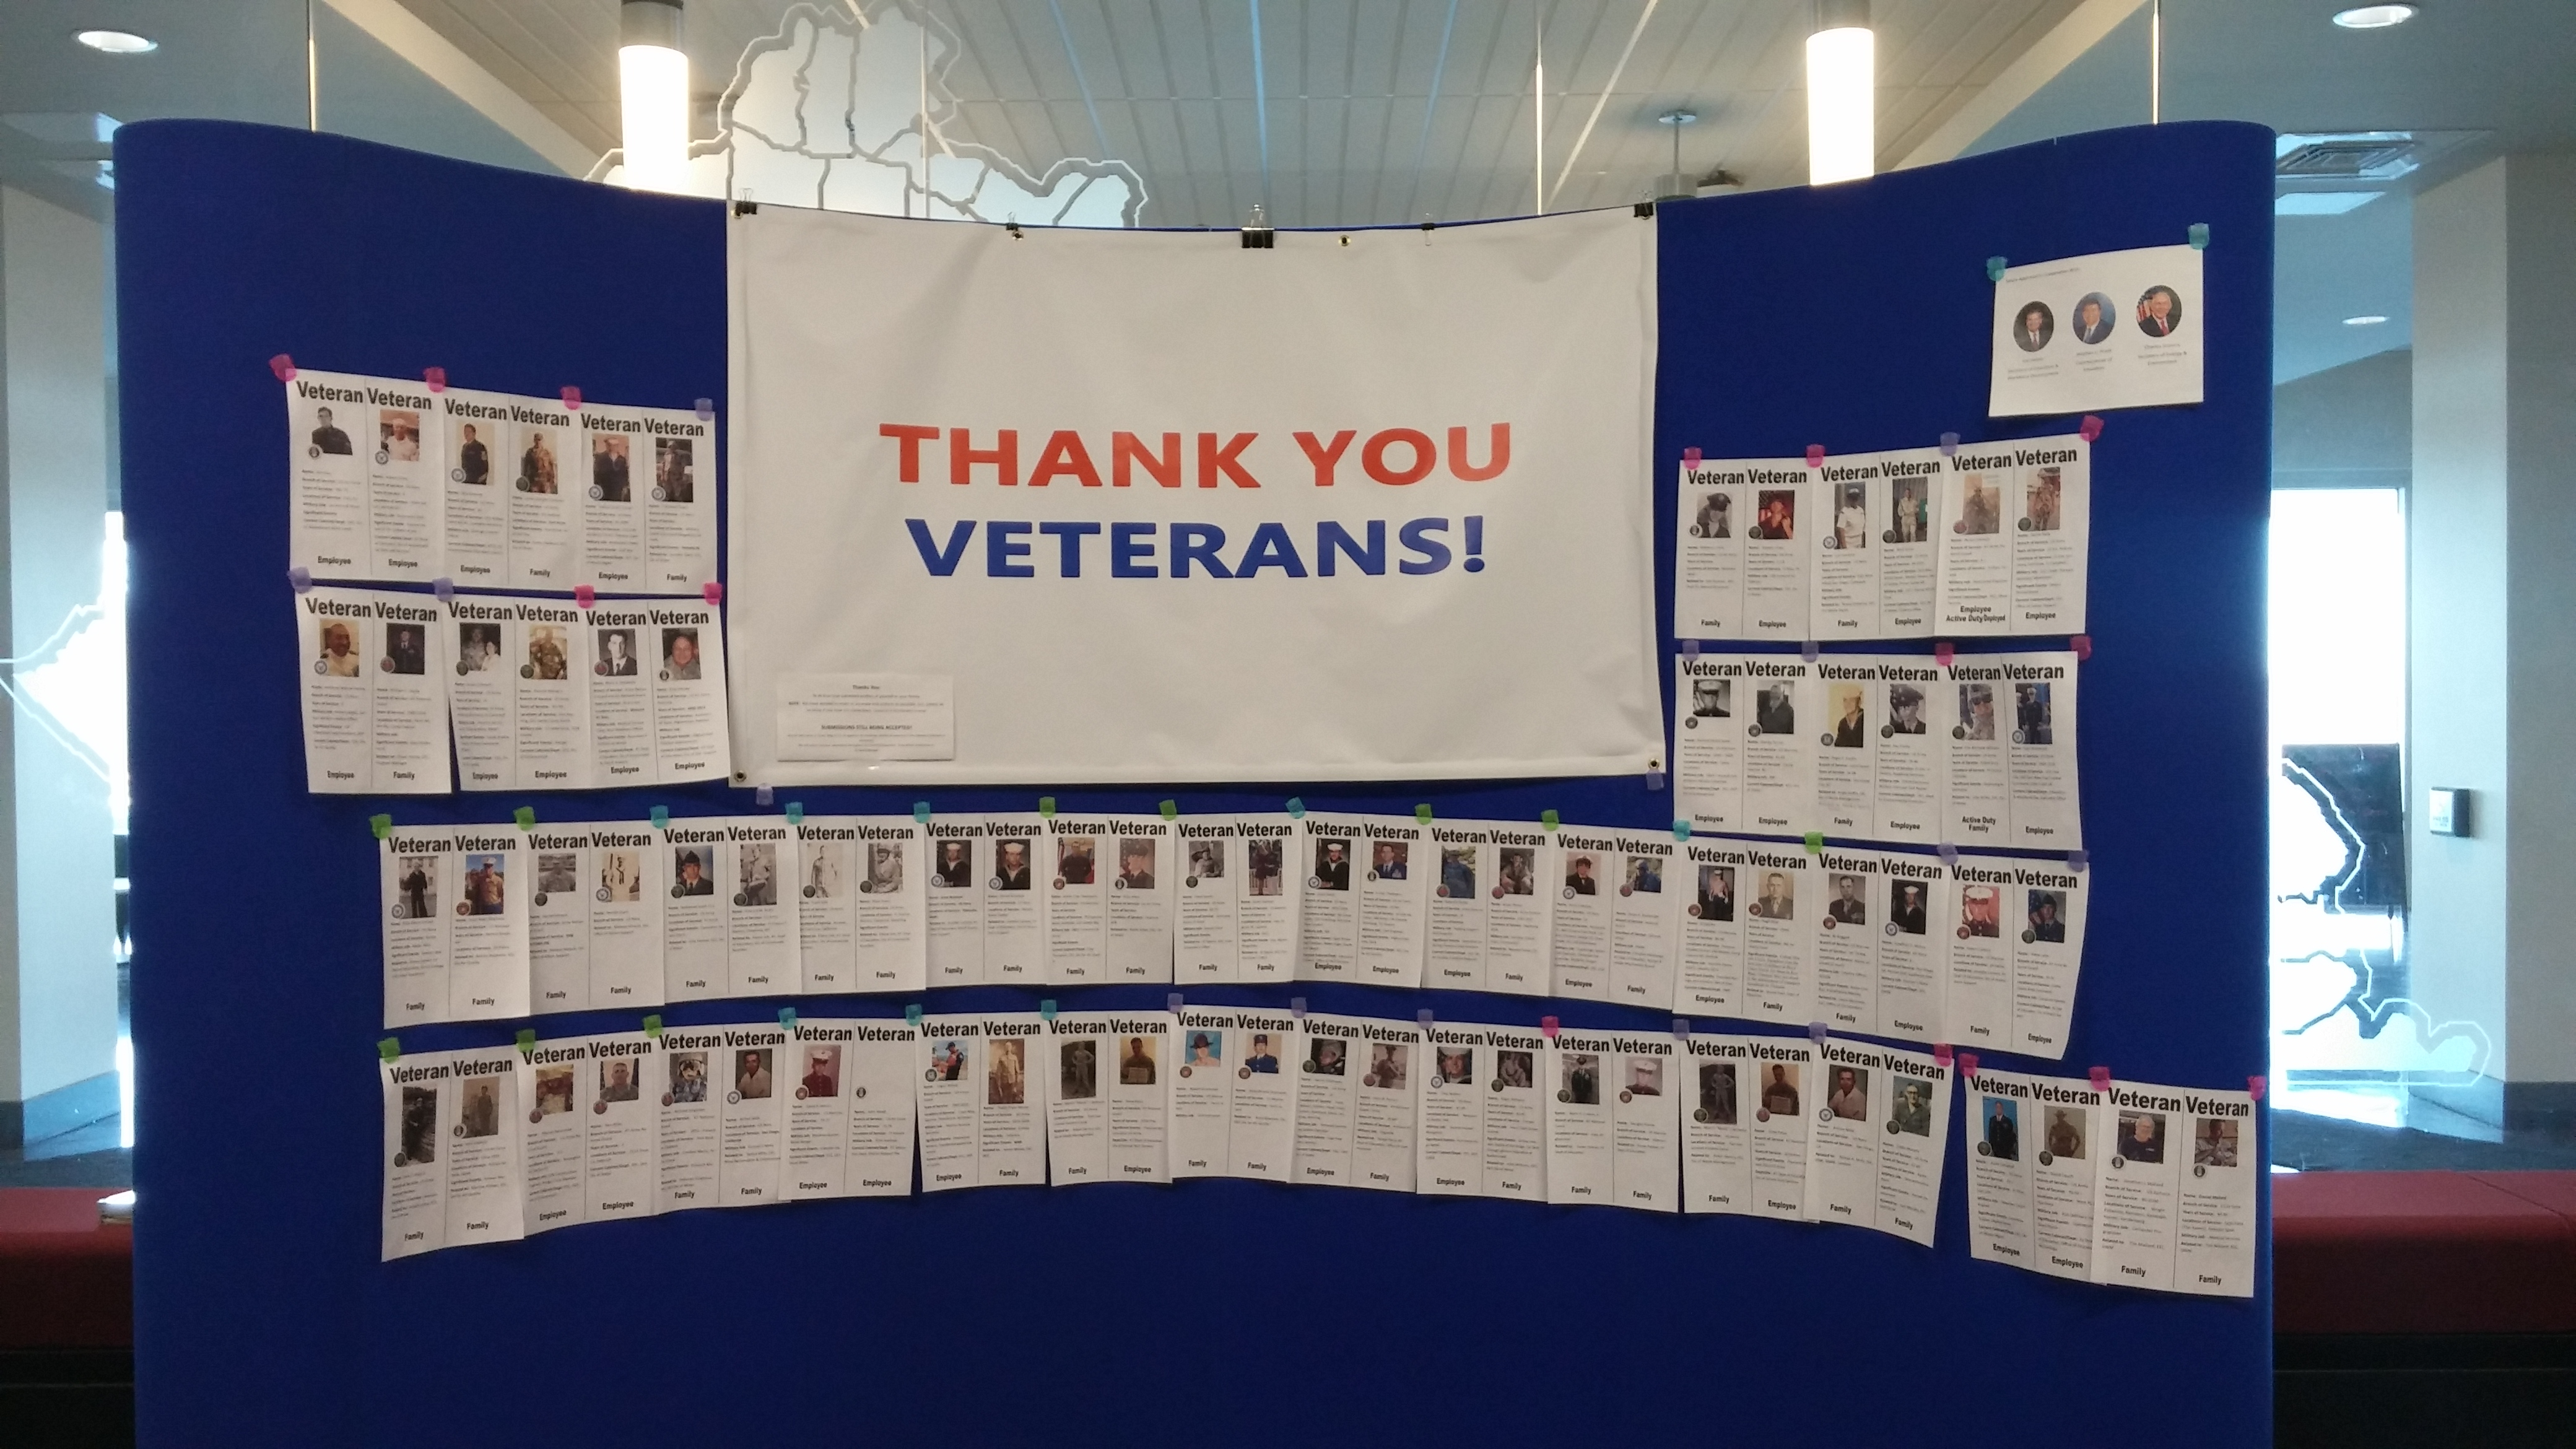 Veterans and families honored during November at 300 Sower Building